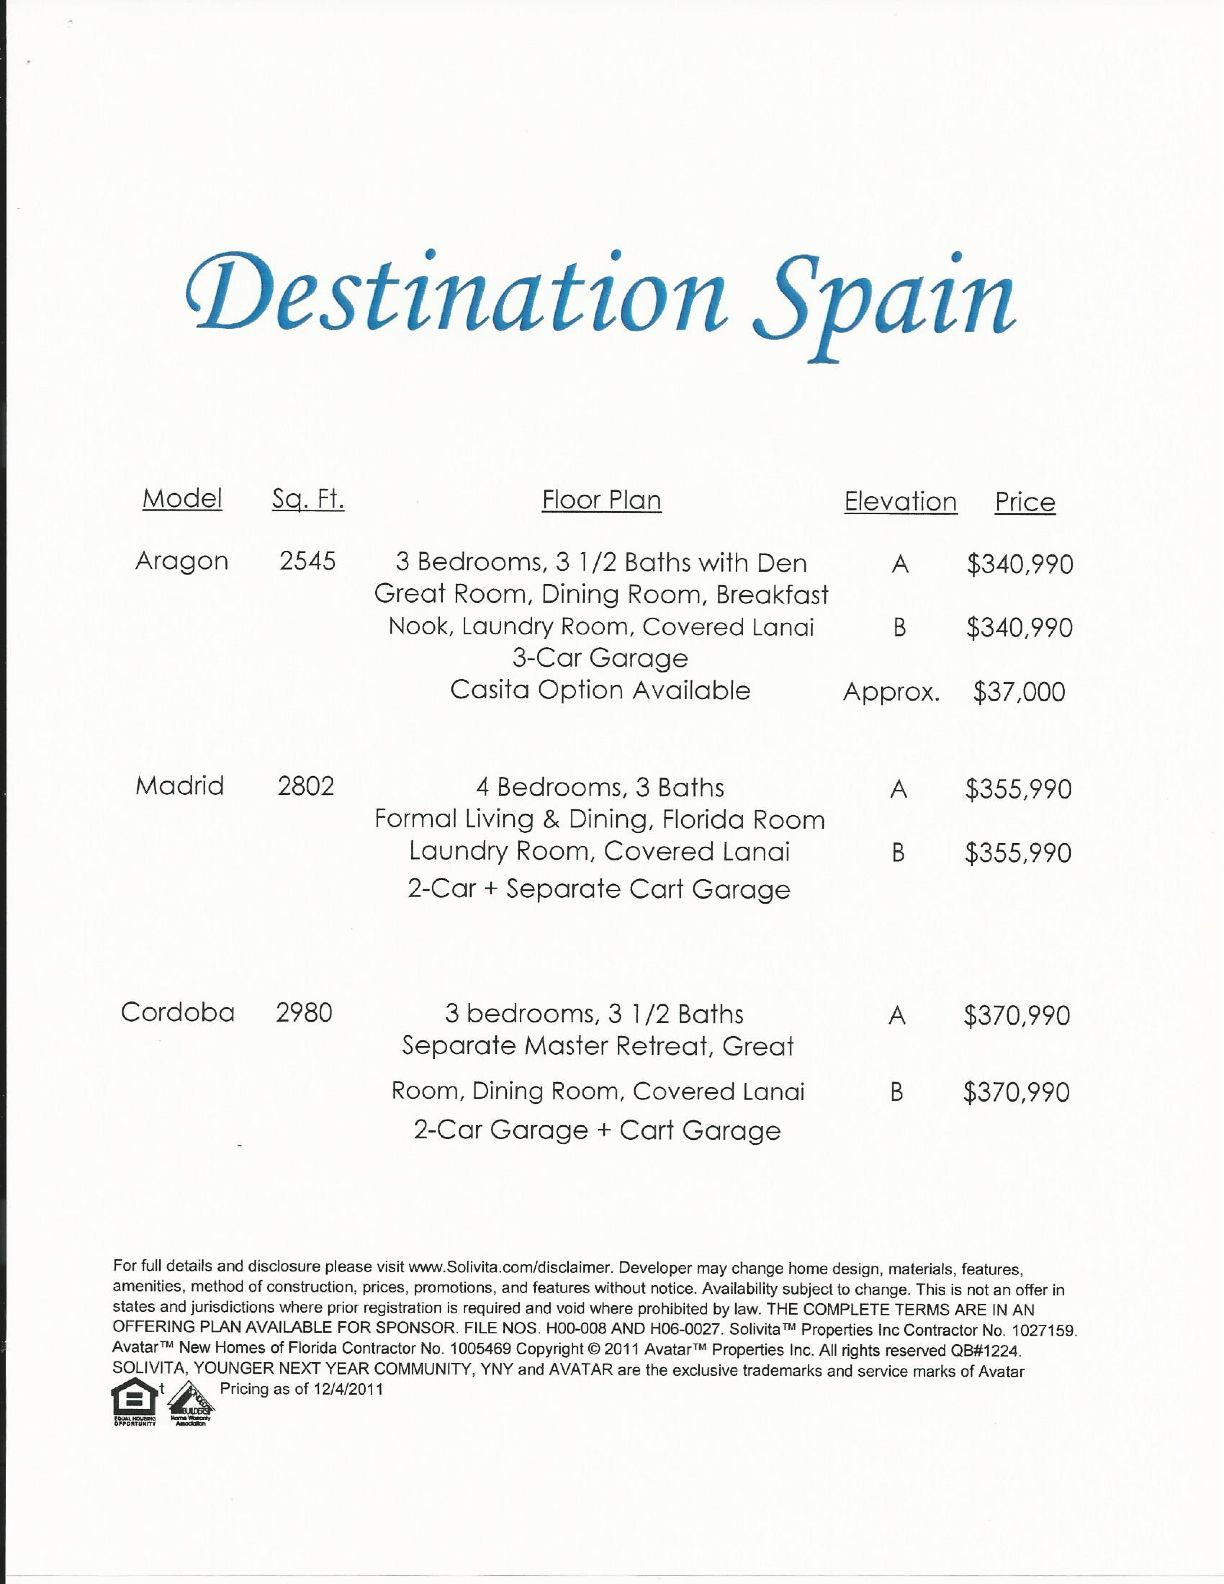 The Price List for The Destination Spain Series in